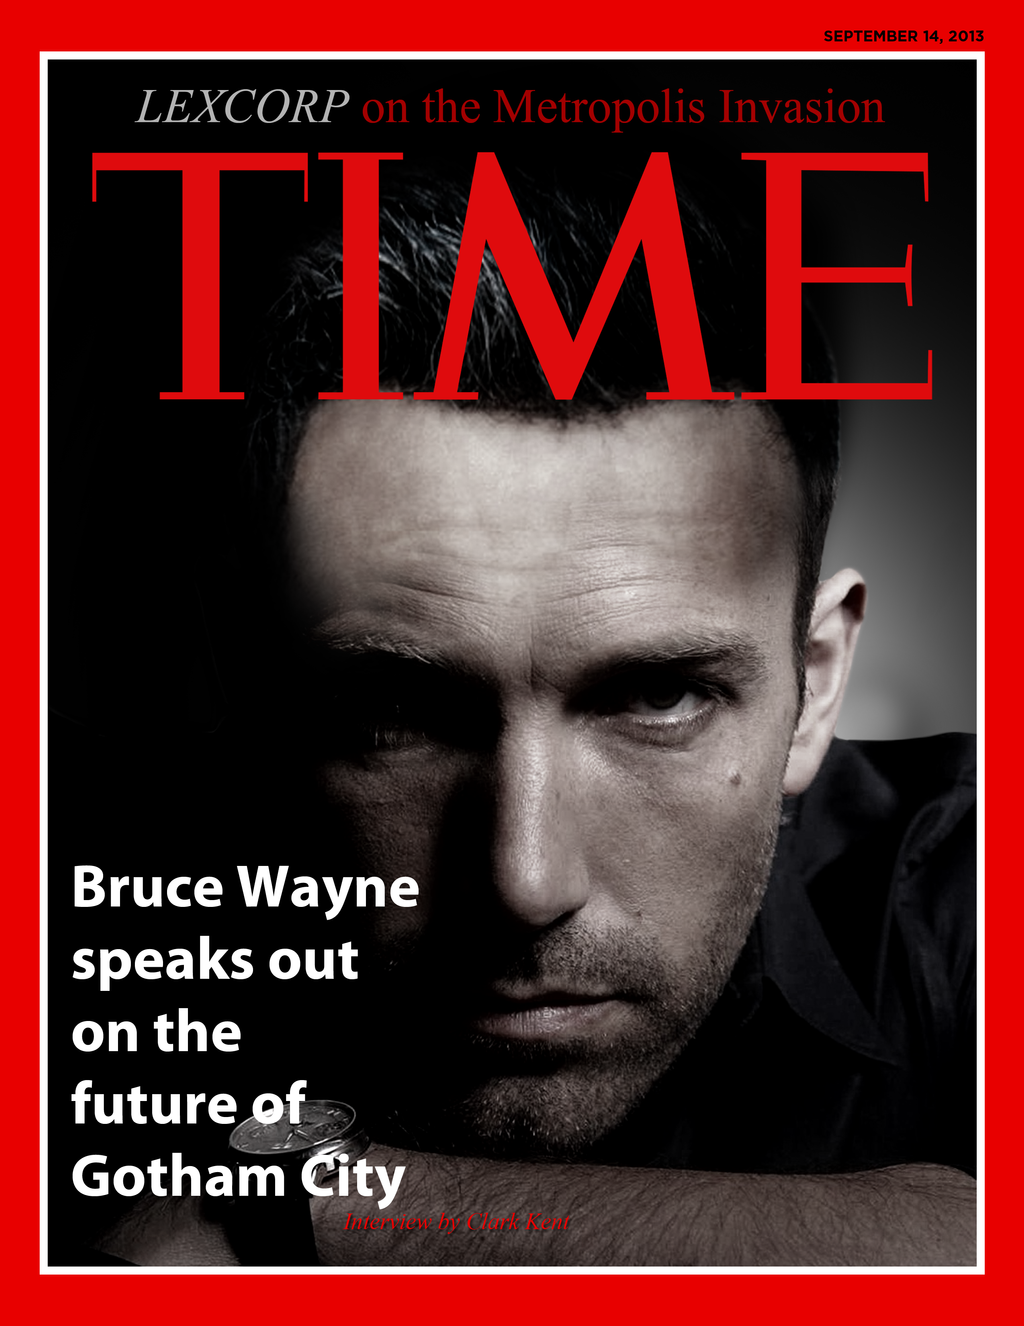 TIME MAGAZINE - 09/14/13 by MrSteiners on DeviantArt